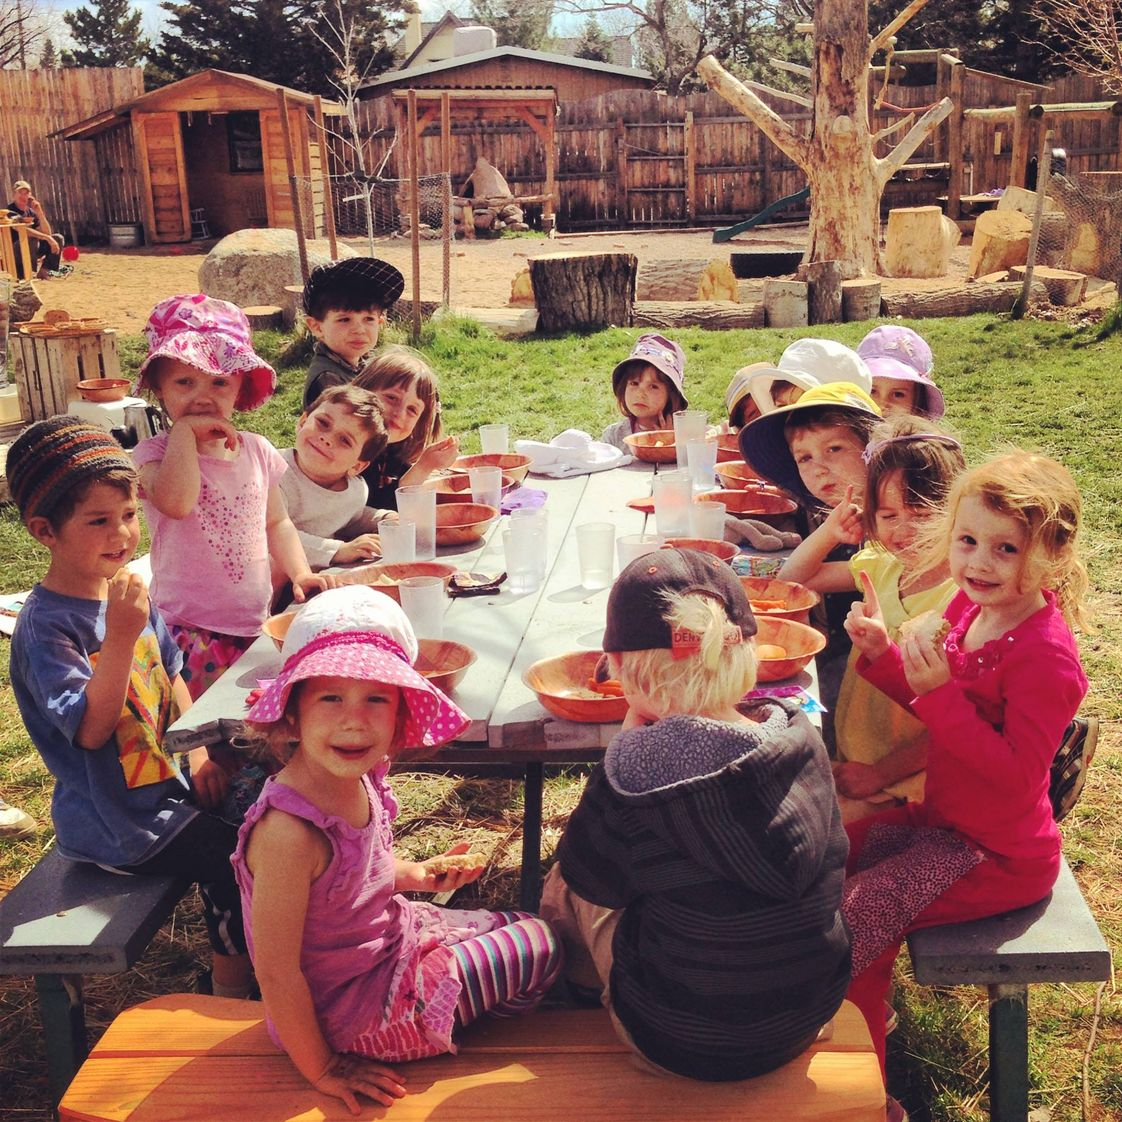 Boulder Waldorf Kindergarten Photo #1 - Enjoying our morning snack on the playground!